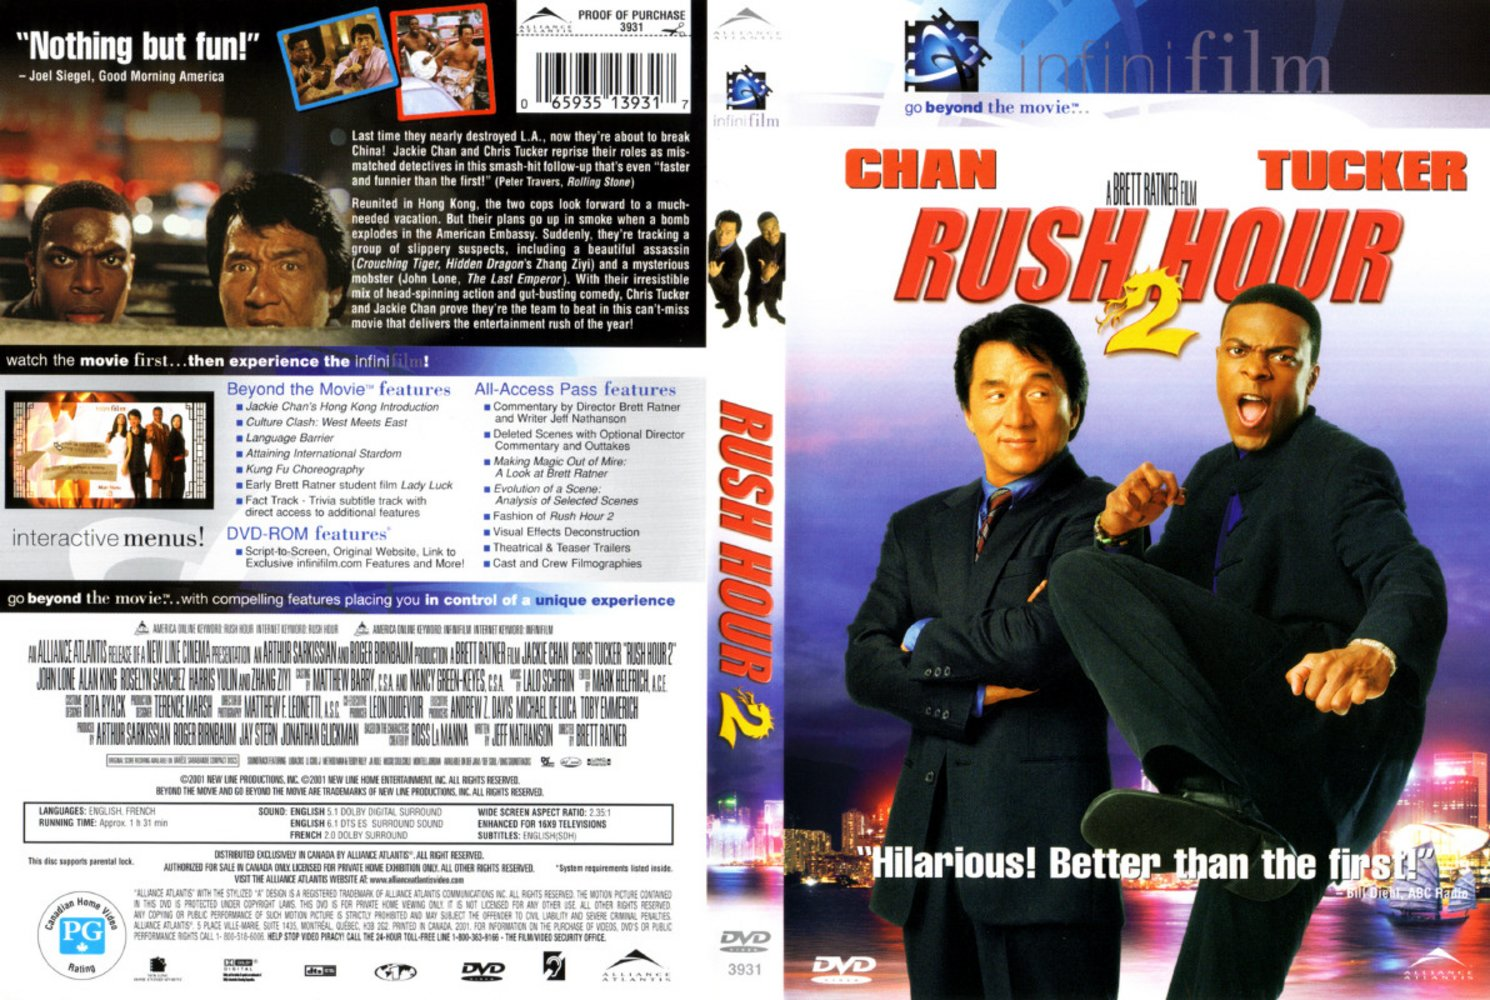 an analysis of rush hour an action movie starring jackie chan and chris tucker